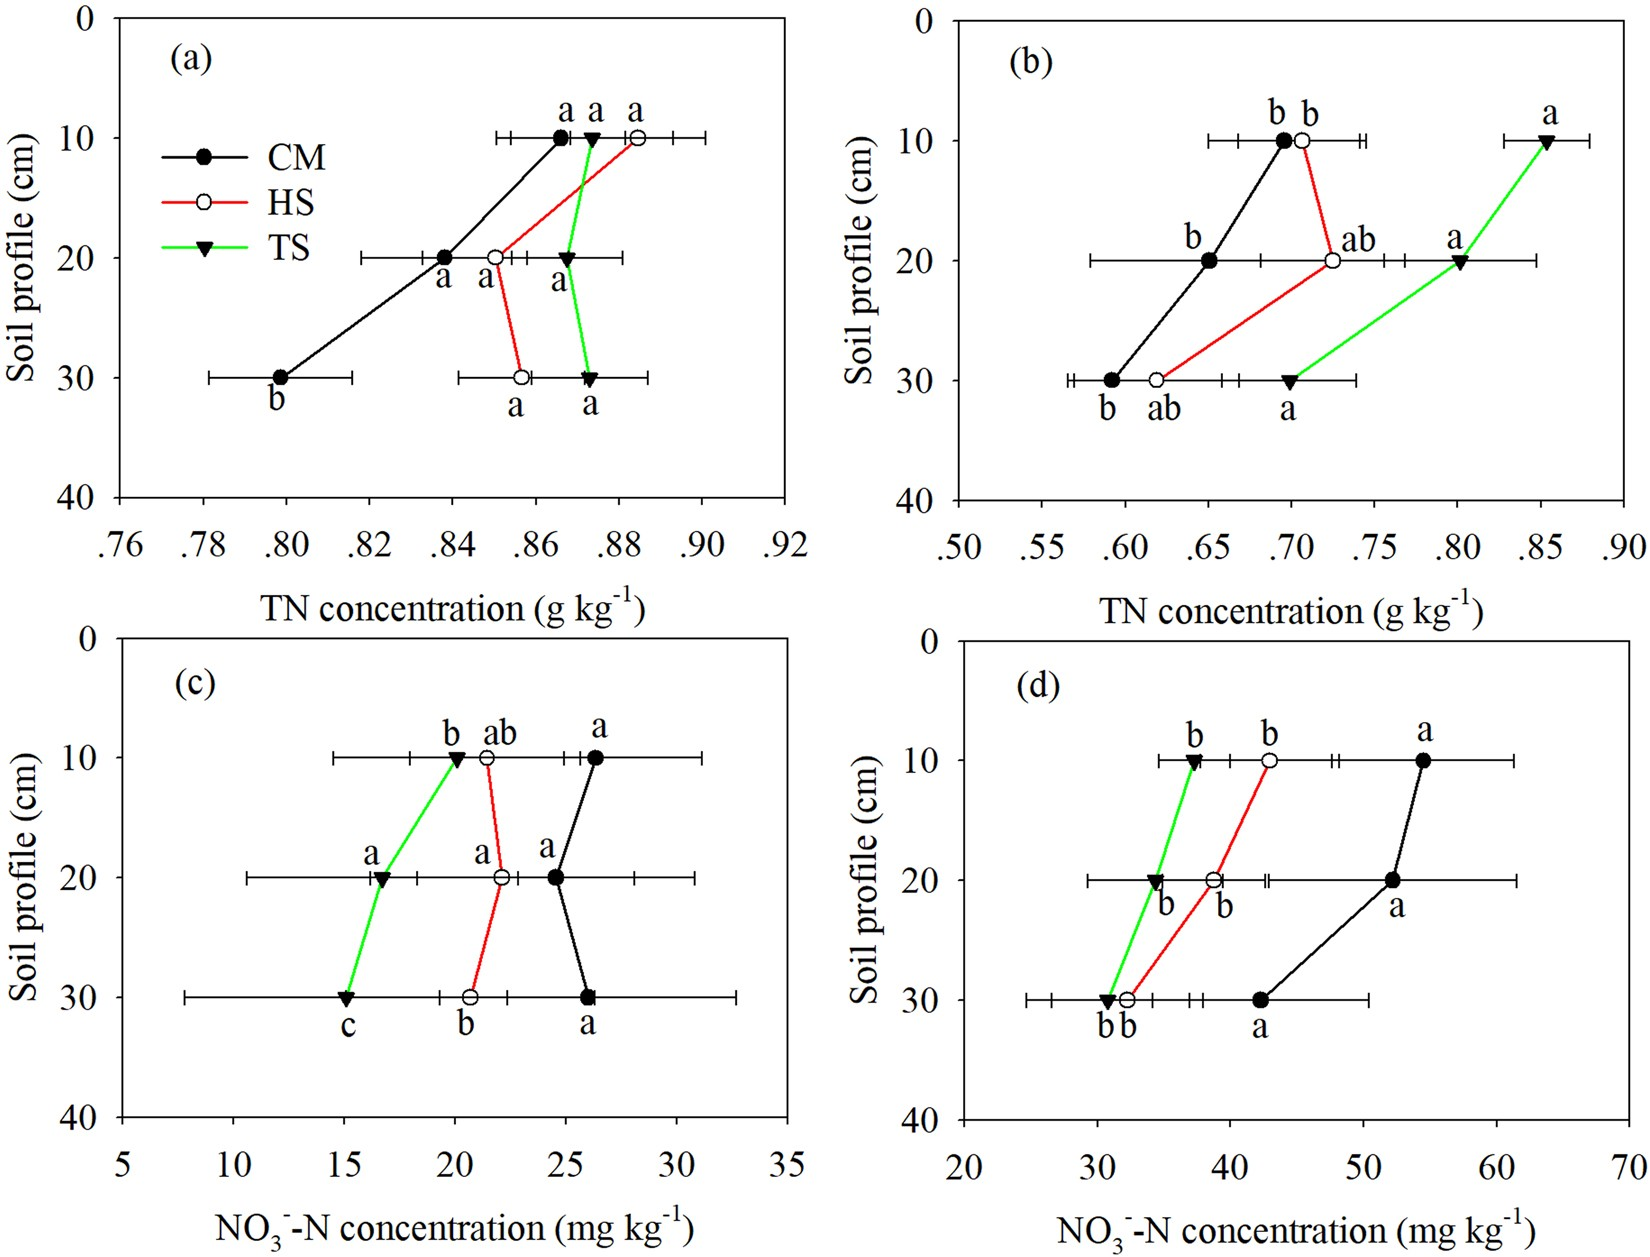 improved crop yield and reduced nitrate nitrogen leaching with straw return  in a rice-wheat rotation of ningxia irrigation district | scientific reports